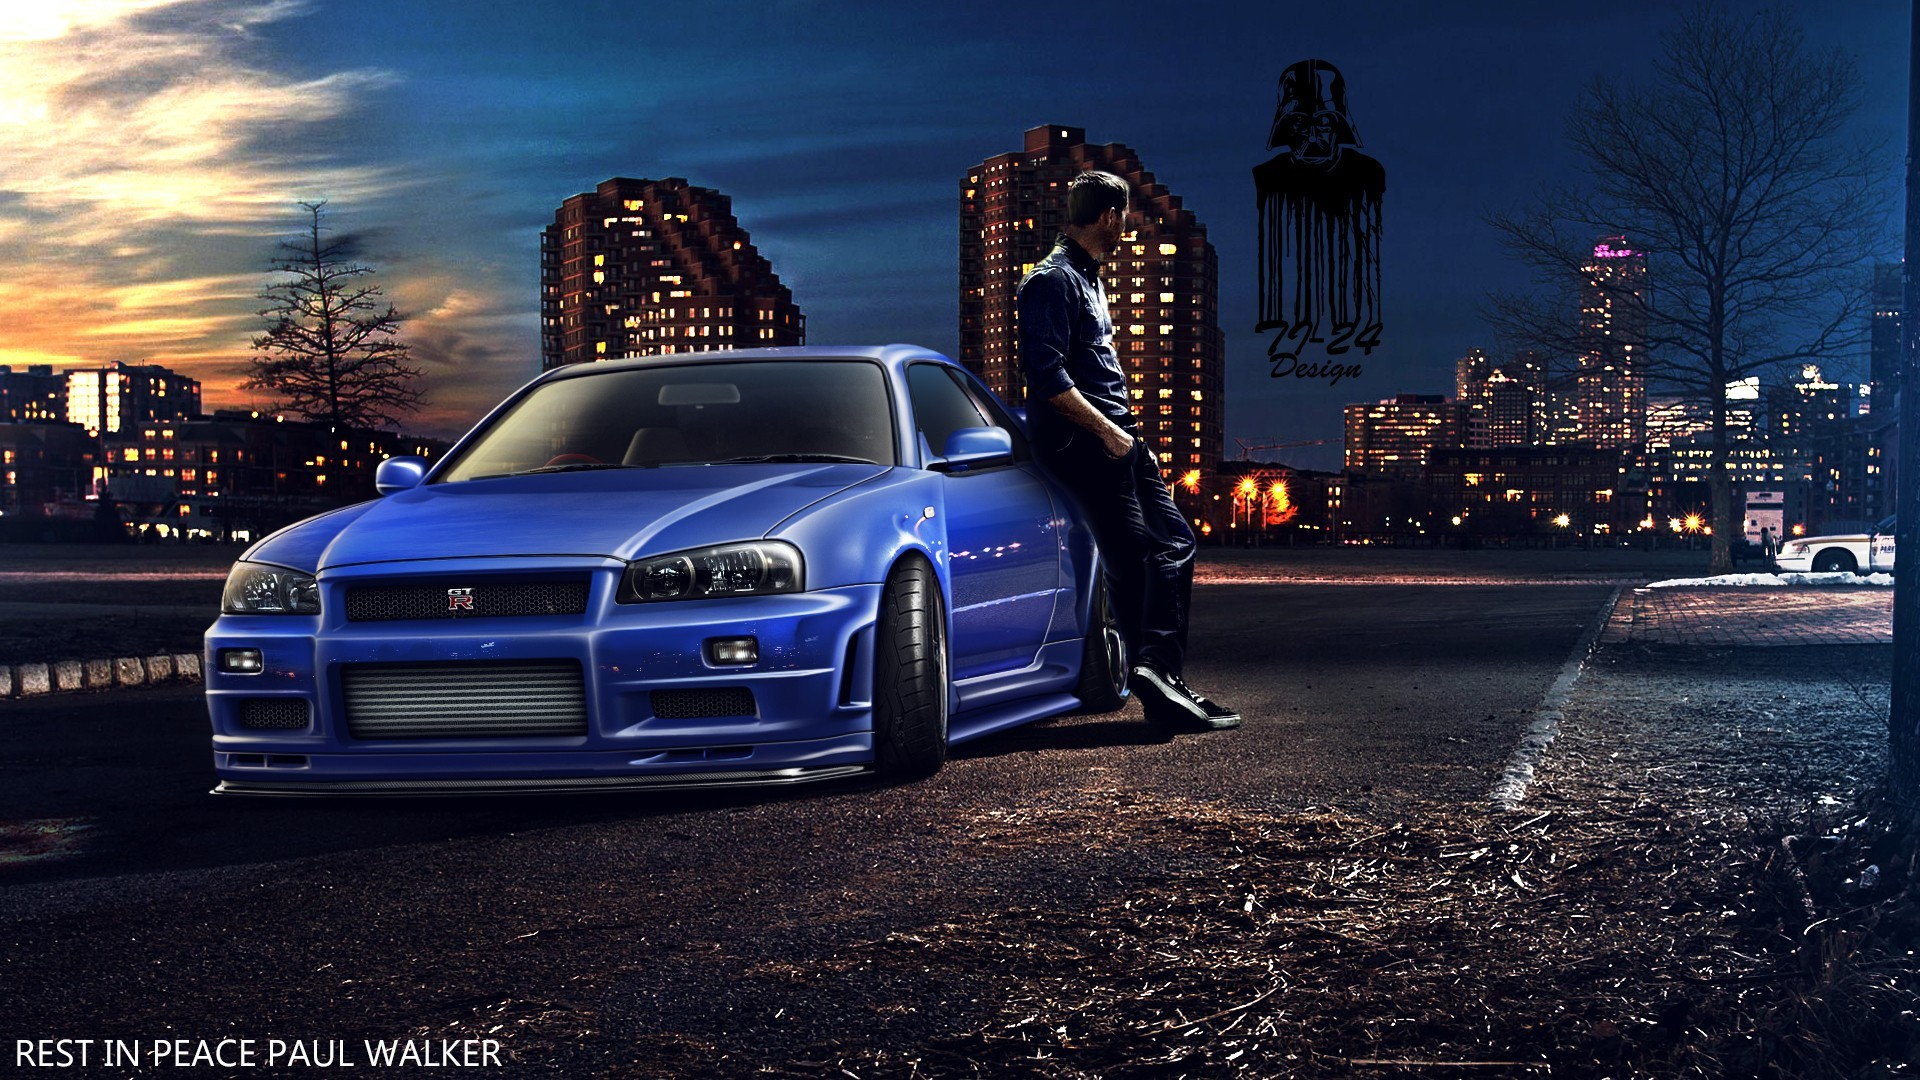 1920x1080 Fast and furious car images wallpapers for free download about